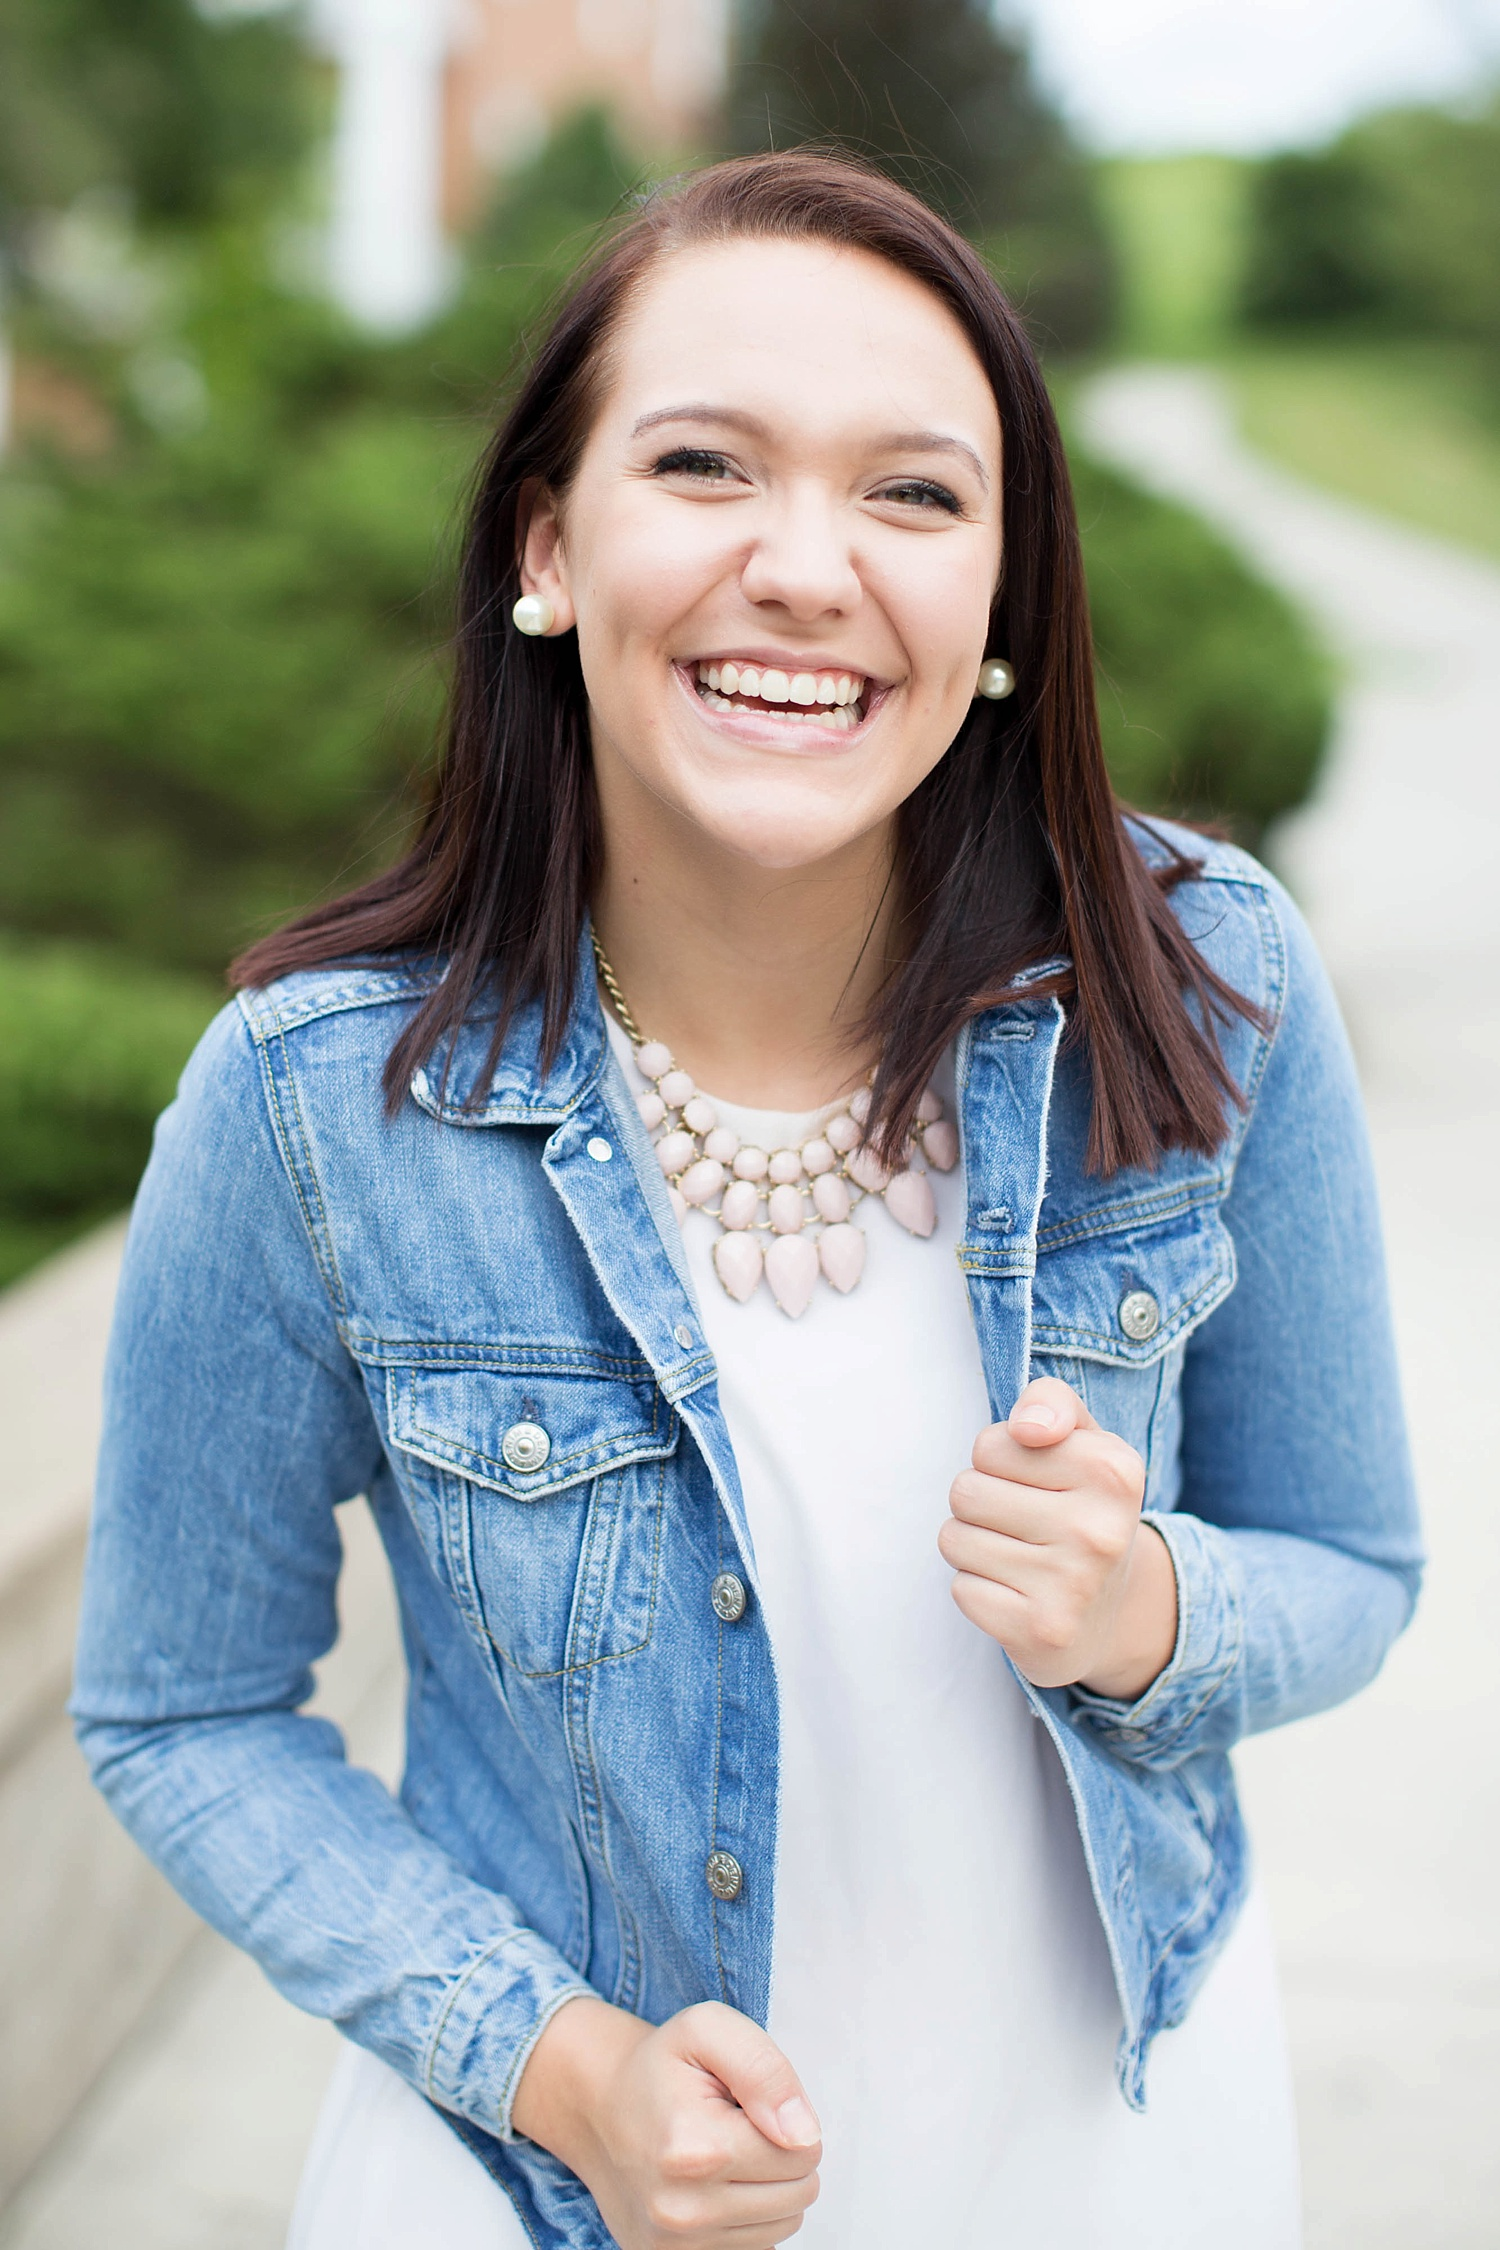 Well y'all, my last senior representative introduction for my 2017 ladies is on the blog this morning! I met Kerri at Hollins University for her session, which is a special place for her, because she hopes to attend college there next year! Click the link in my bio to see my favorites from her gorgeous senior session!